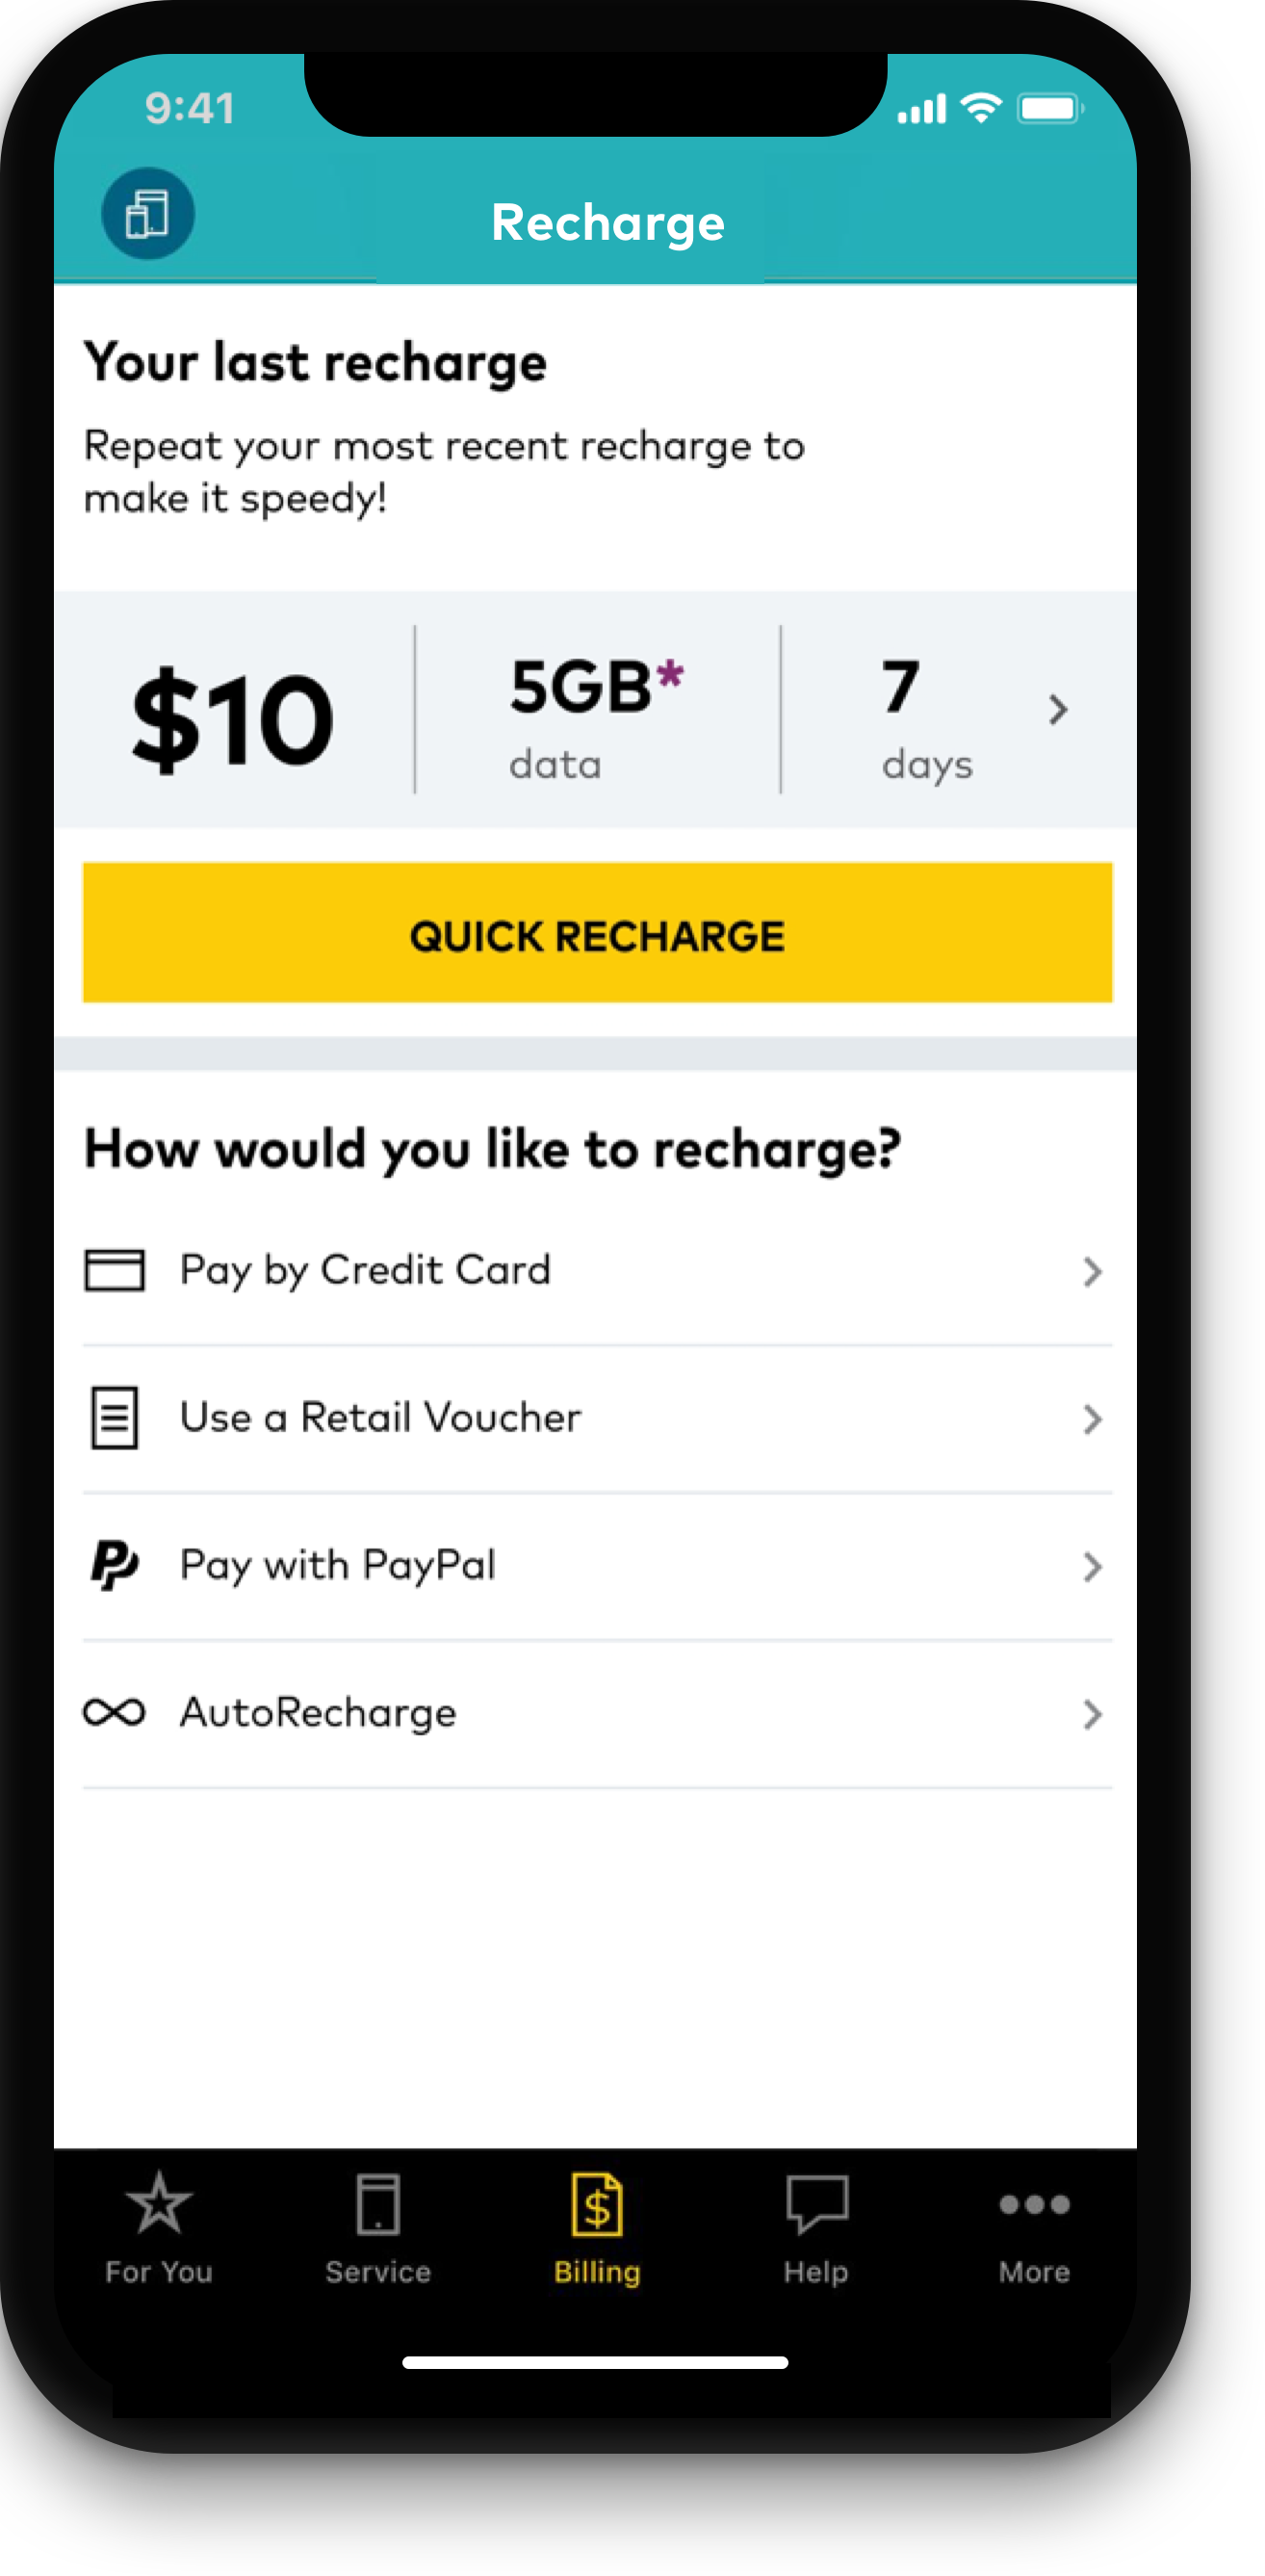 Prepaid customers can recharge in app without using data